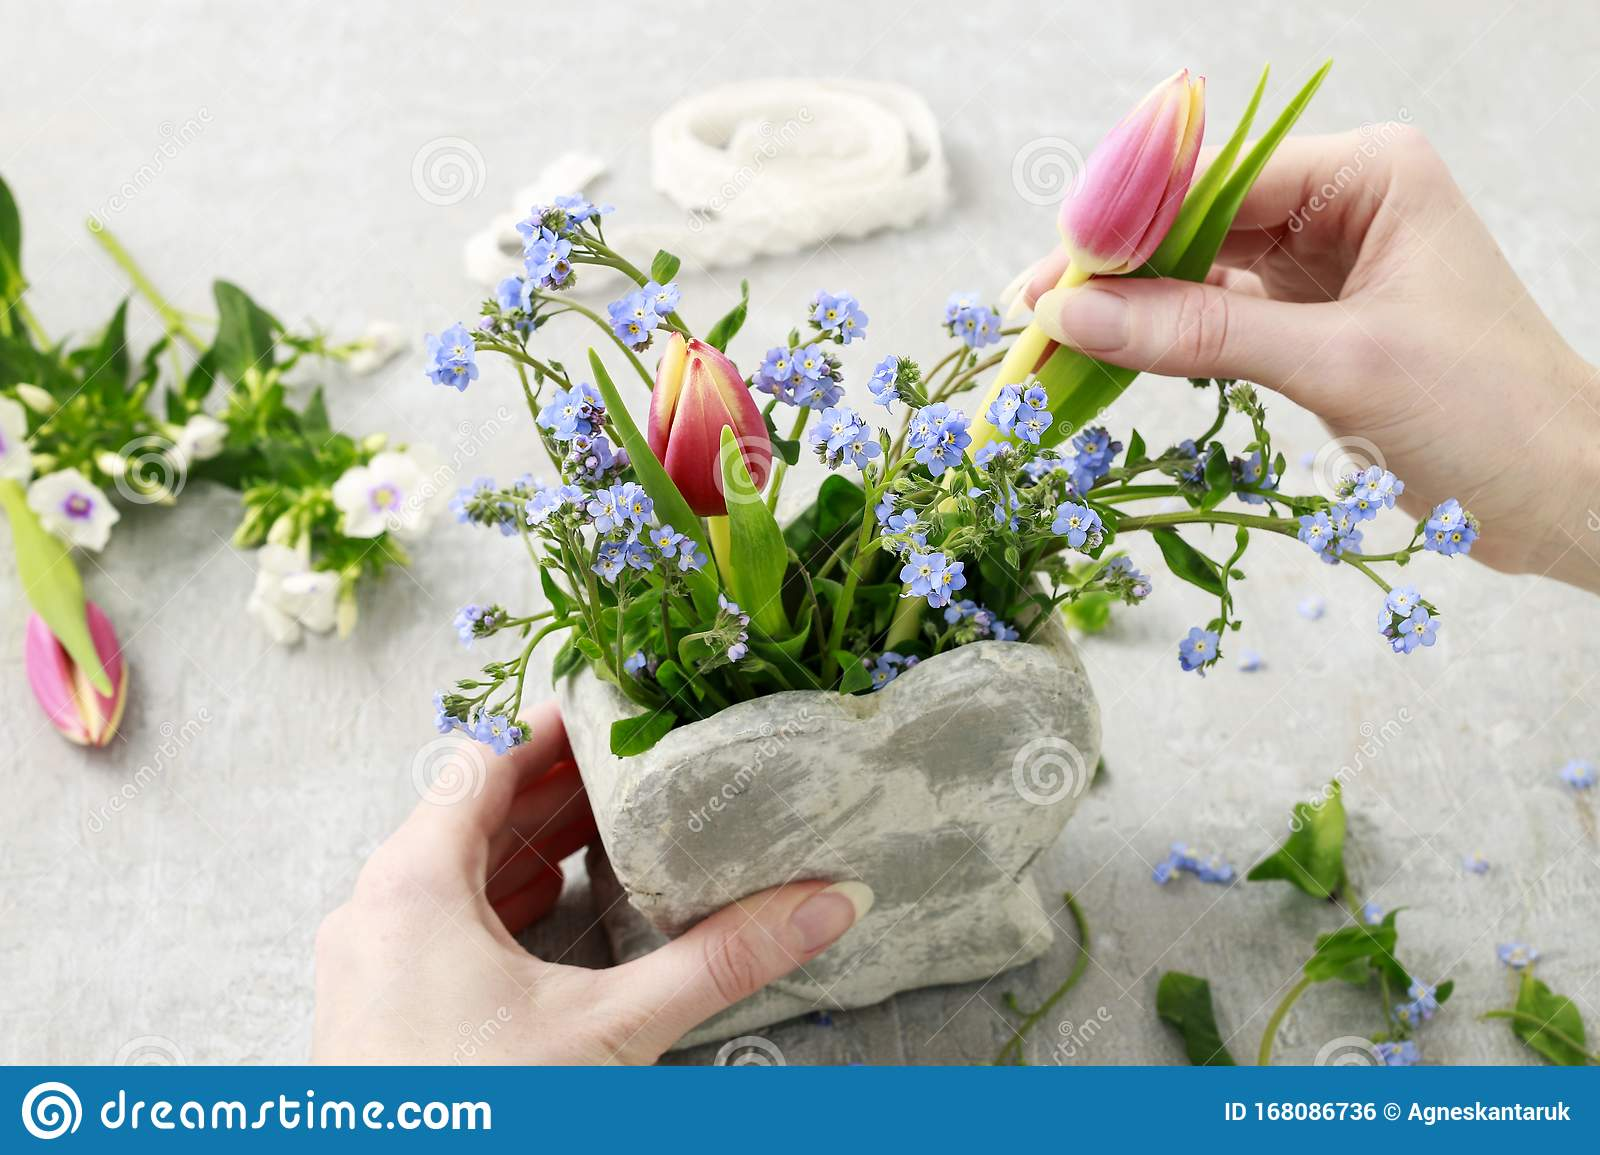 How To Make Floral Arrangement Inside Stone Heart Vase Stock Photo Image Of Feelings Daisy 168086736